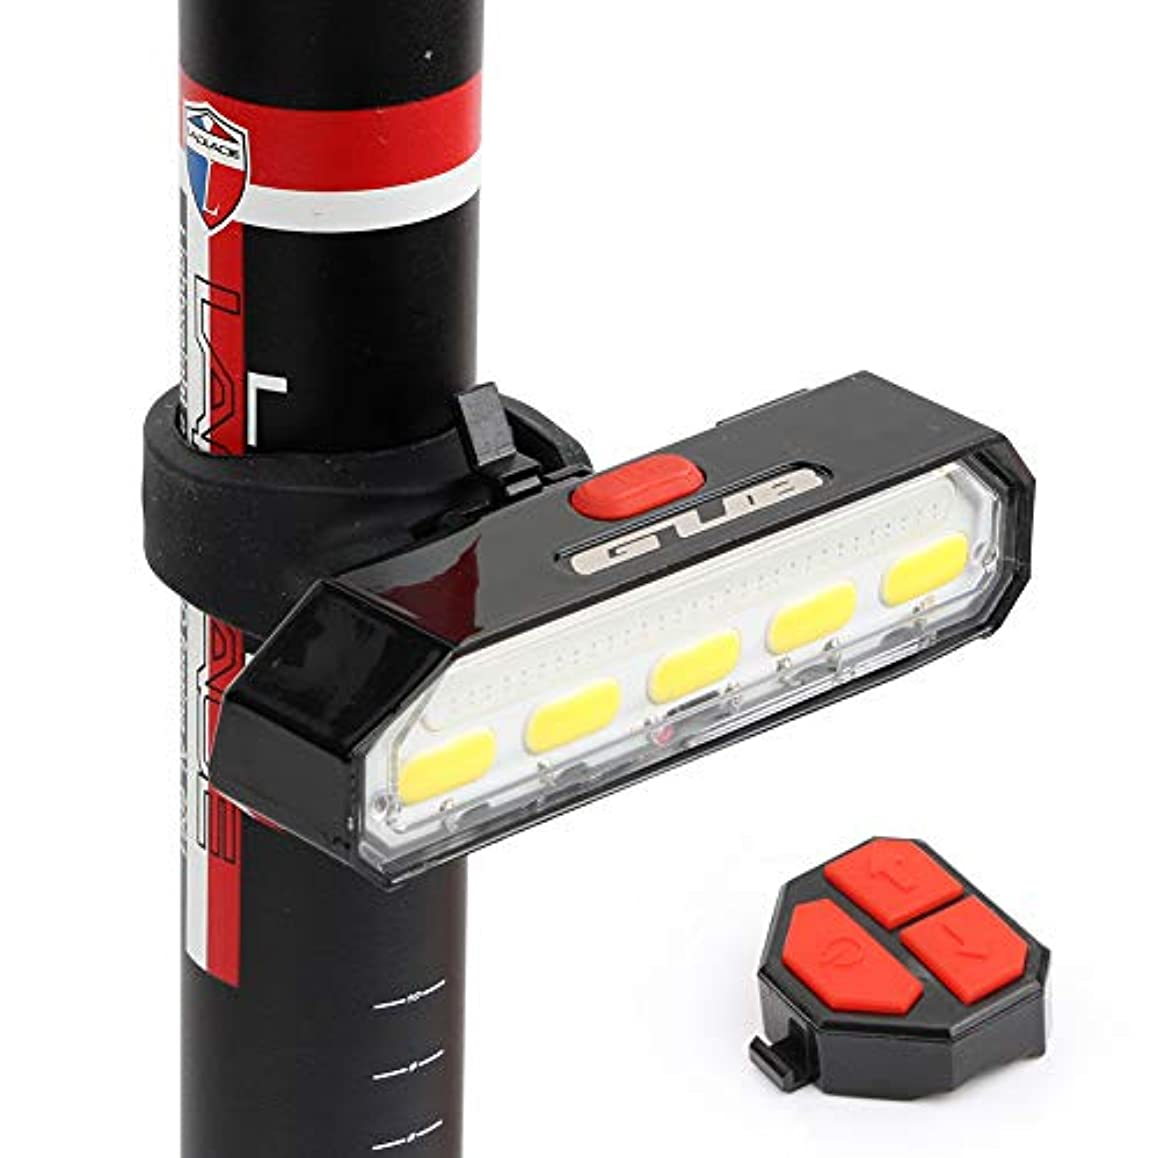 読み書きのできない少ない巧みなGUB M-61 Bicycle Light USB Rechargeable Tail Light LED Warning Rear Lights Cycling Smart Wireless Remote Control Turn Signal